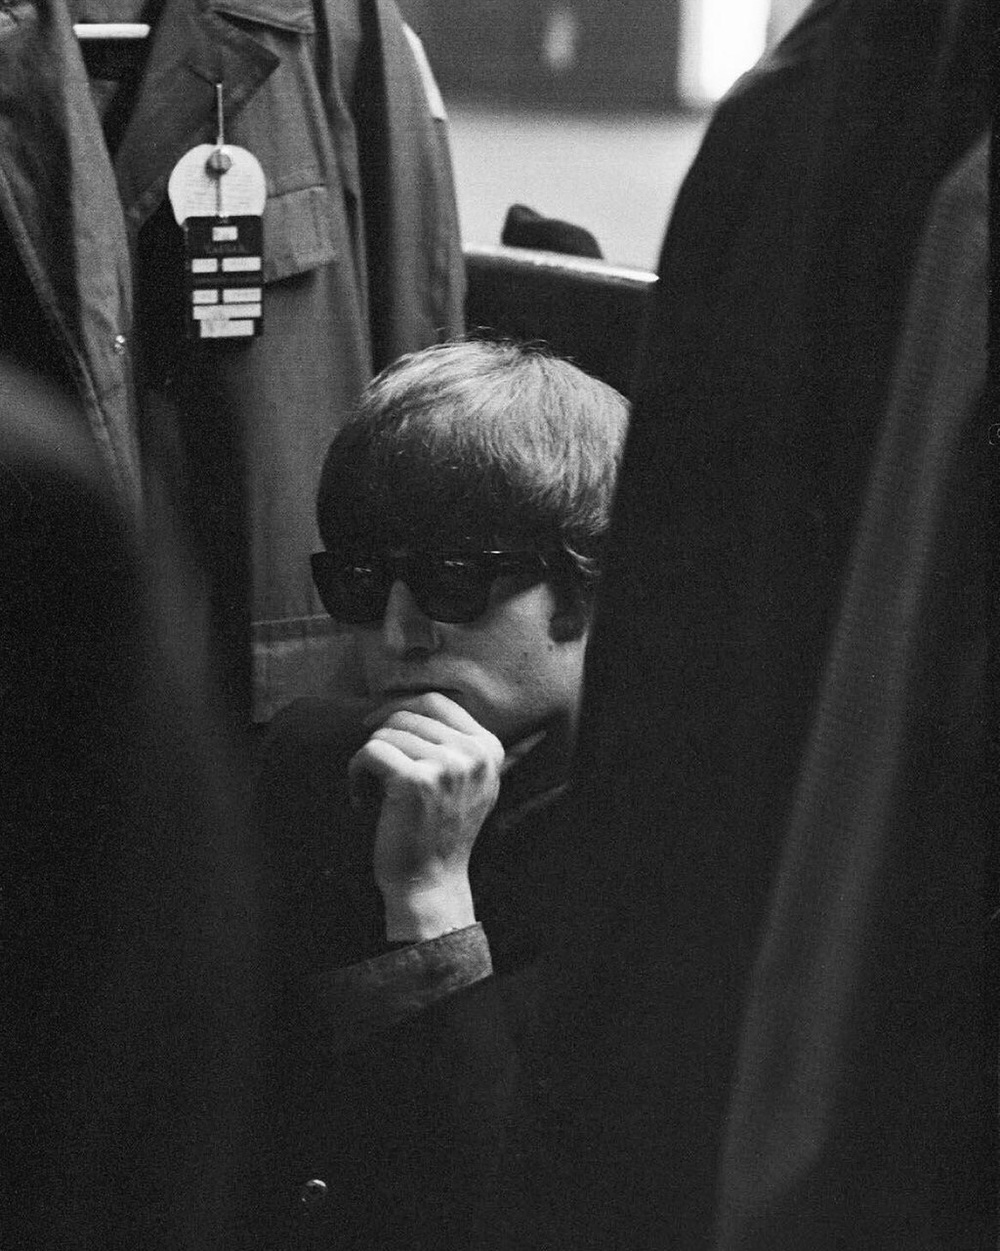 John Lennon, 1964. Photo by George Harrison.